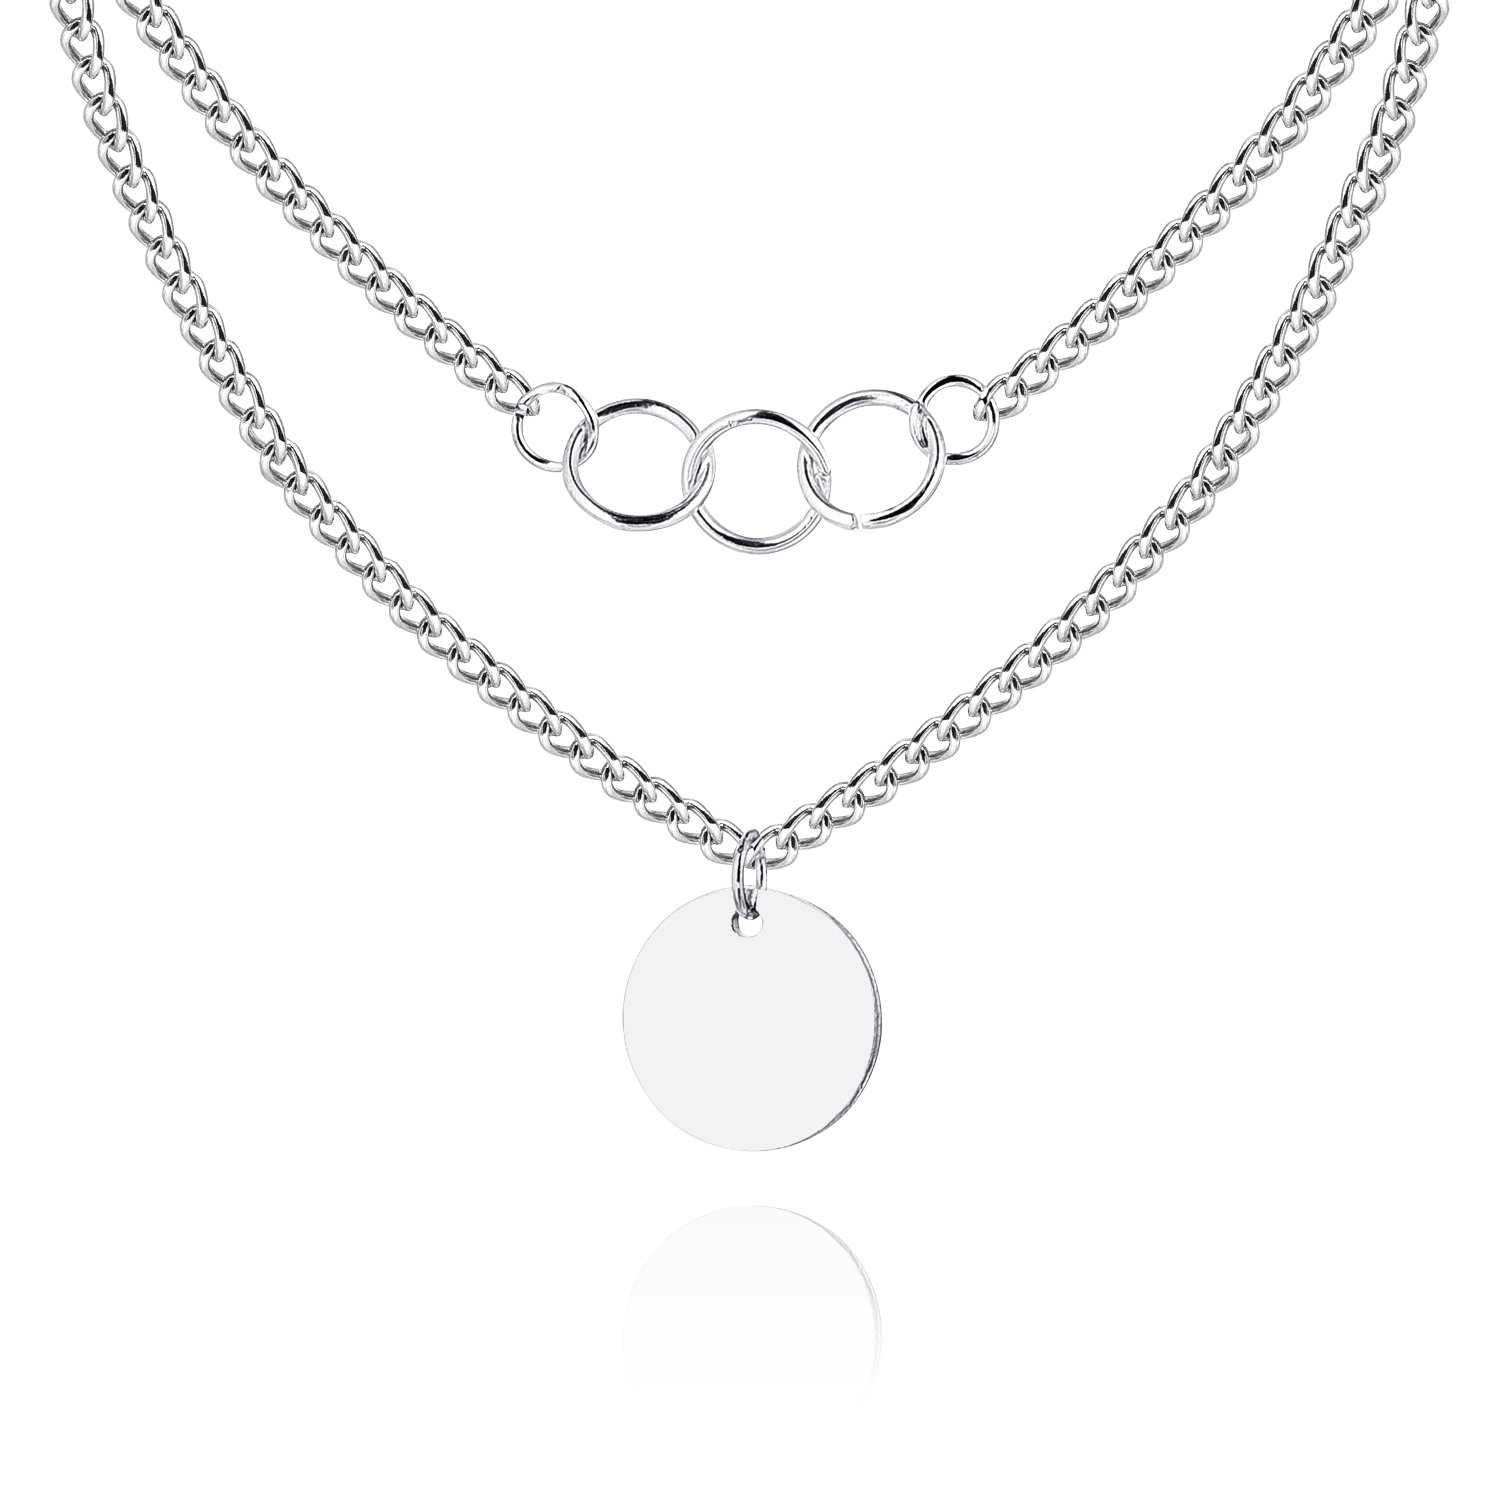 Cherisherre Women's Dual Layer Necklace,Silver Tone Medium Round Pendant Necklace with Stainless Steel Chain